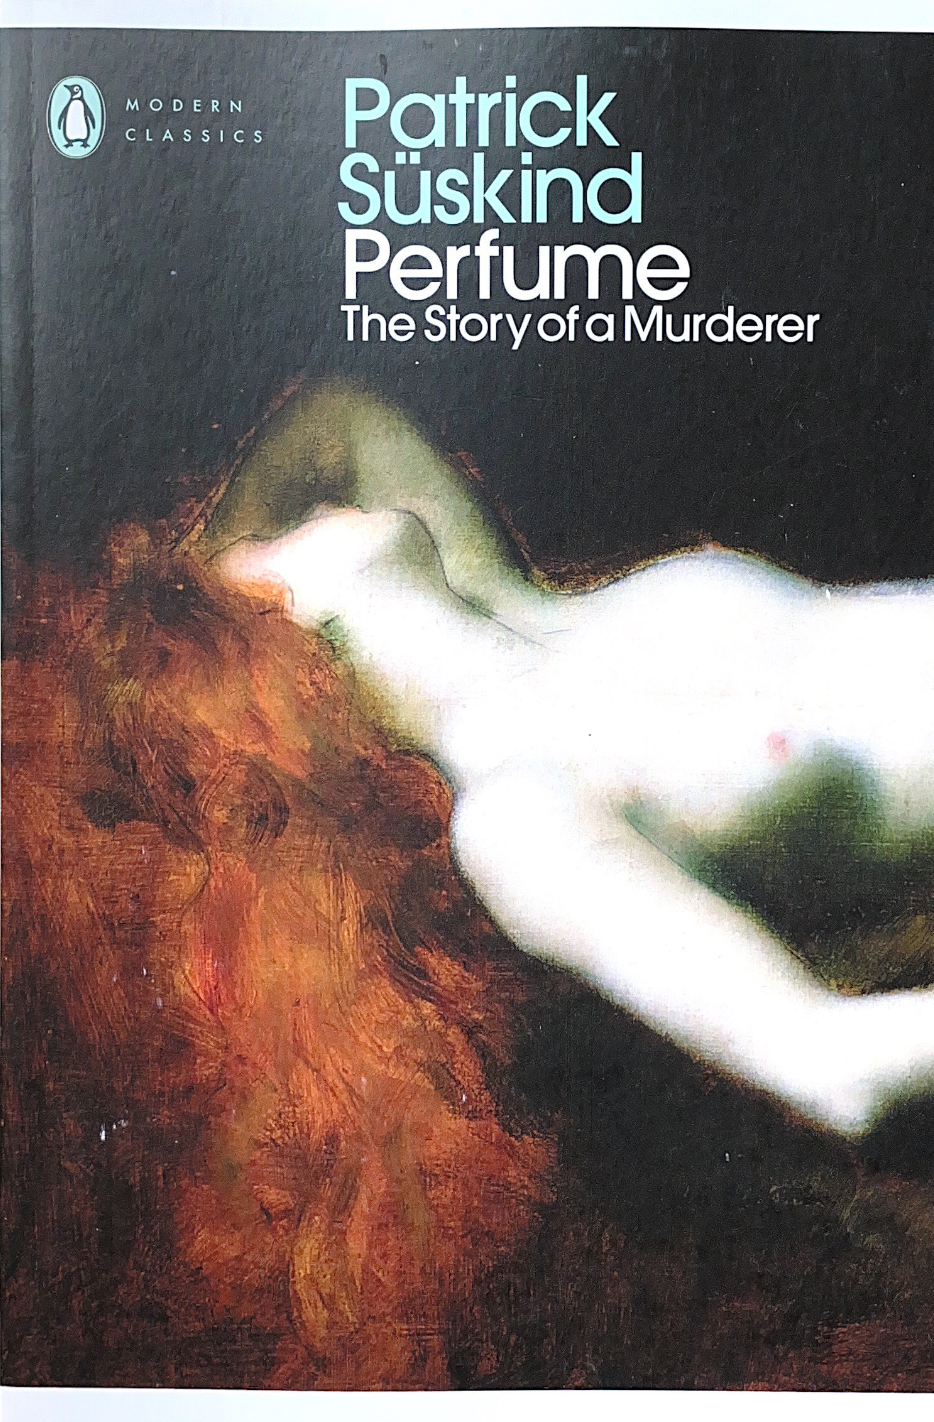 Patrick Süskind Perfume The Story of a Murderer